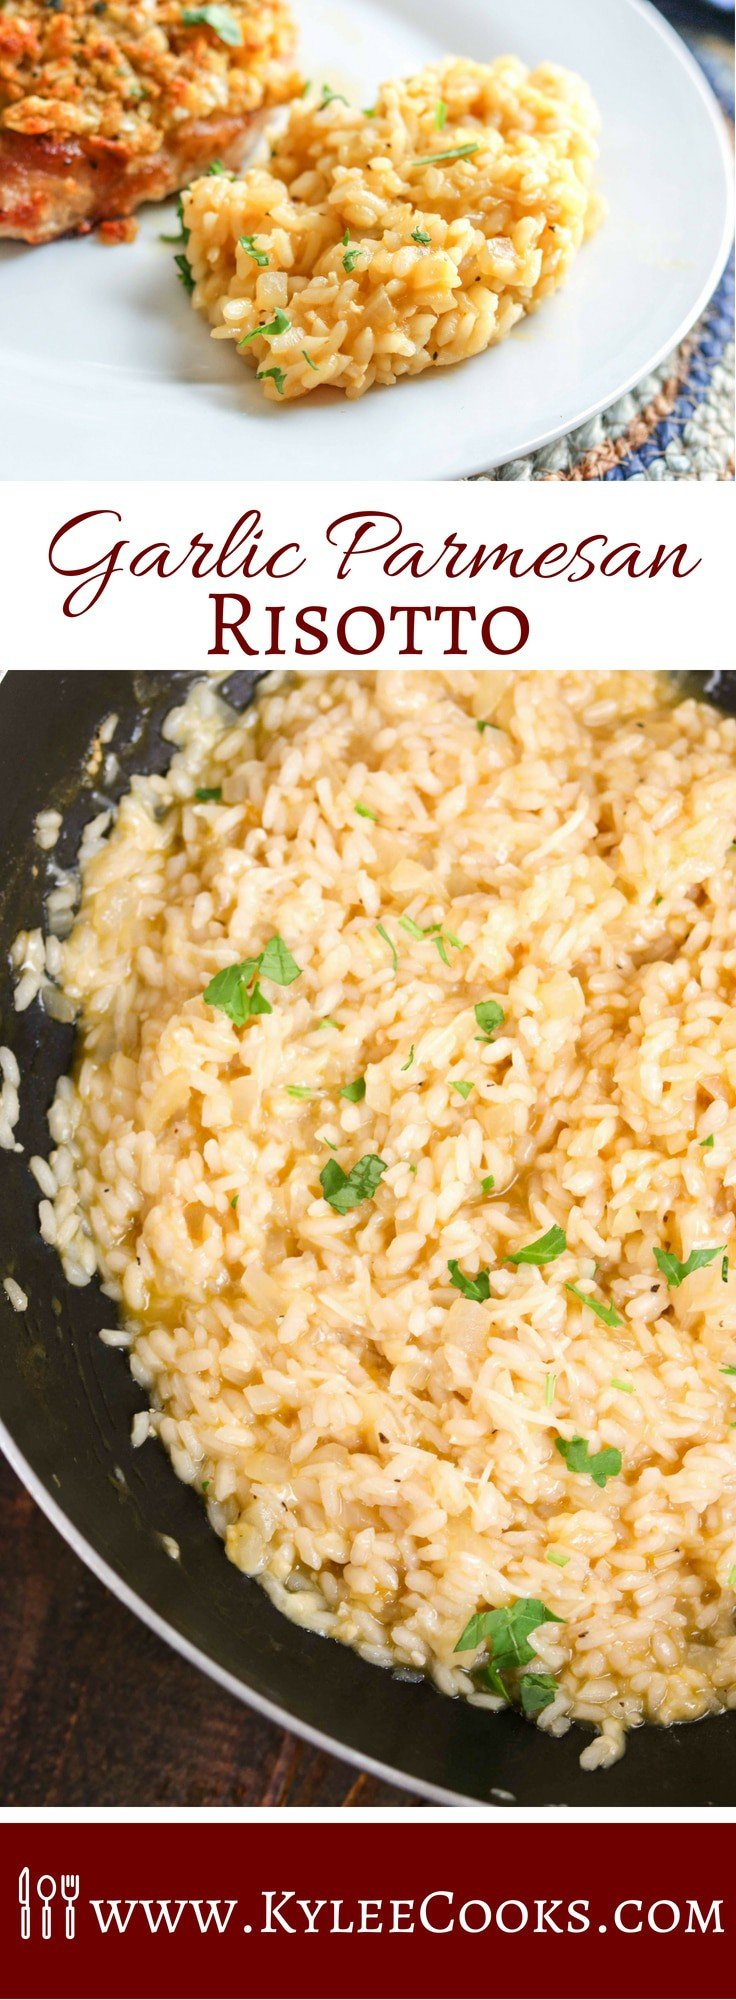 Risotto in 17-25 minutes?! I'm in! Garlic Parmesan Risotto may be the star of the show we call 'dinner' in this easy side - it's sure to please the whole family! #risotto #parmesan #sidedish #recipe #kyleecooks